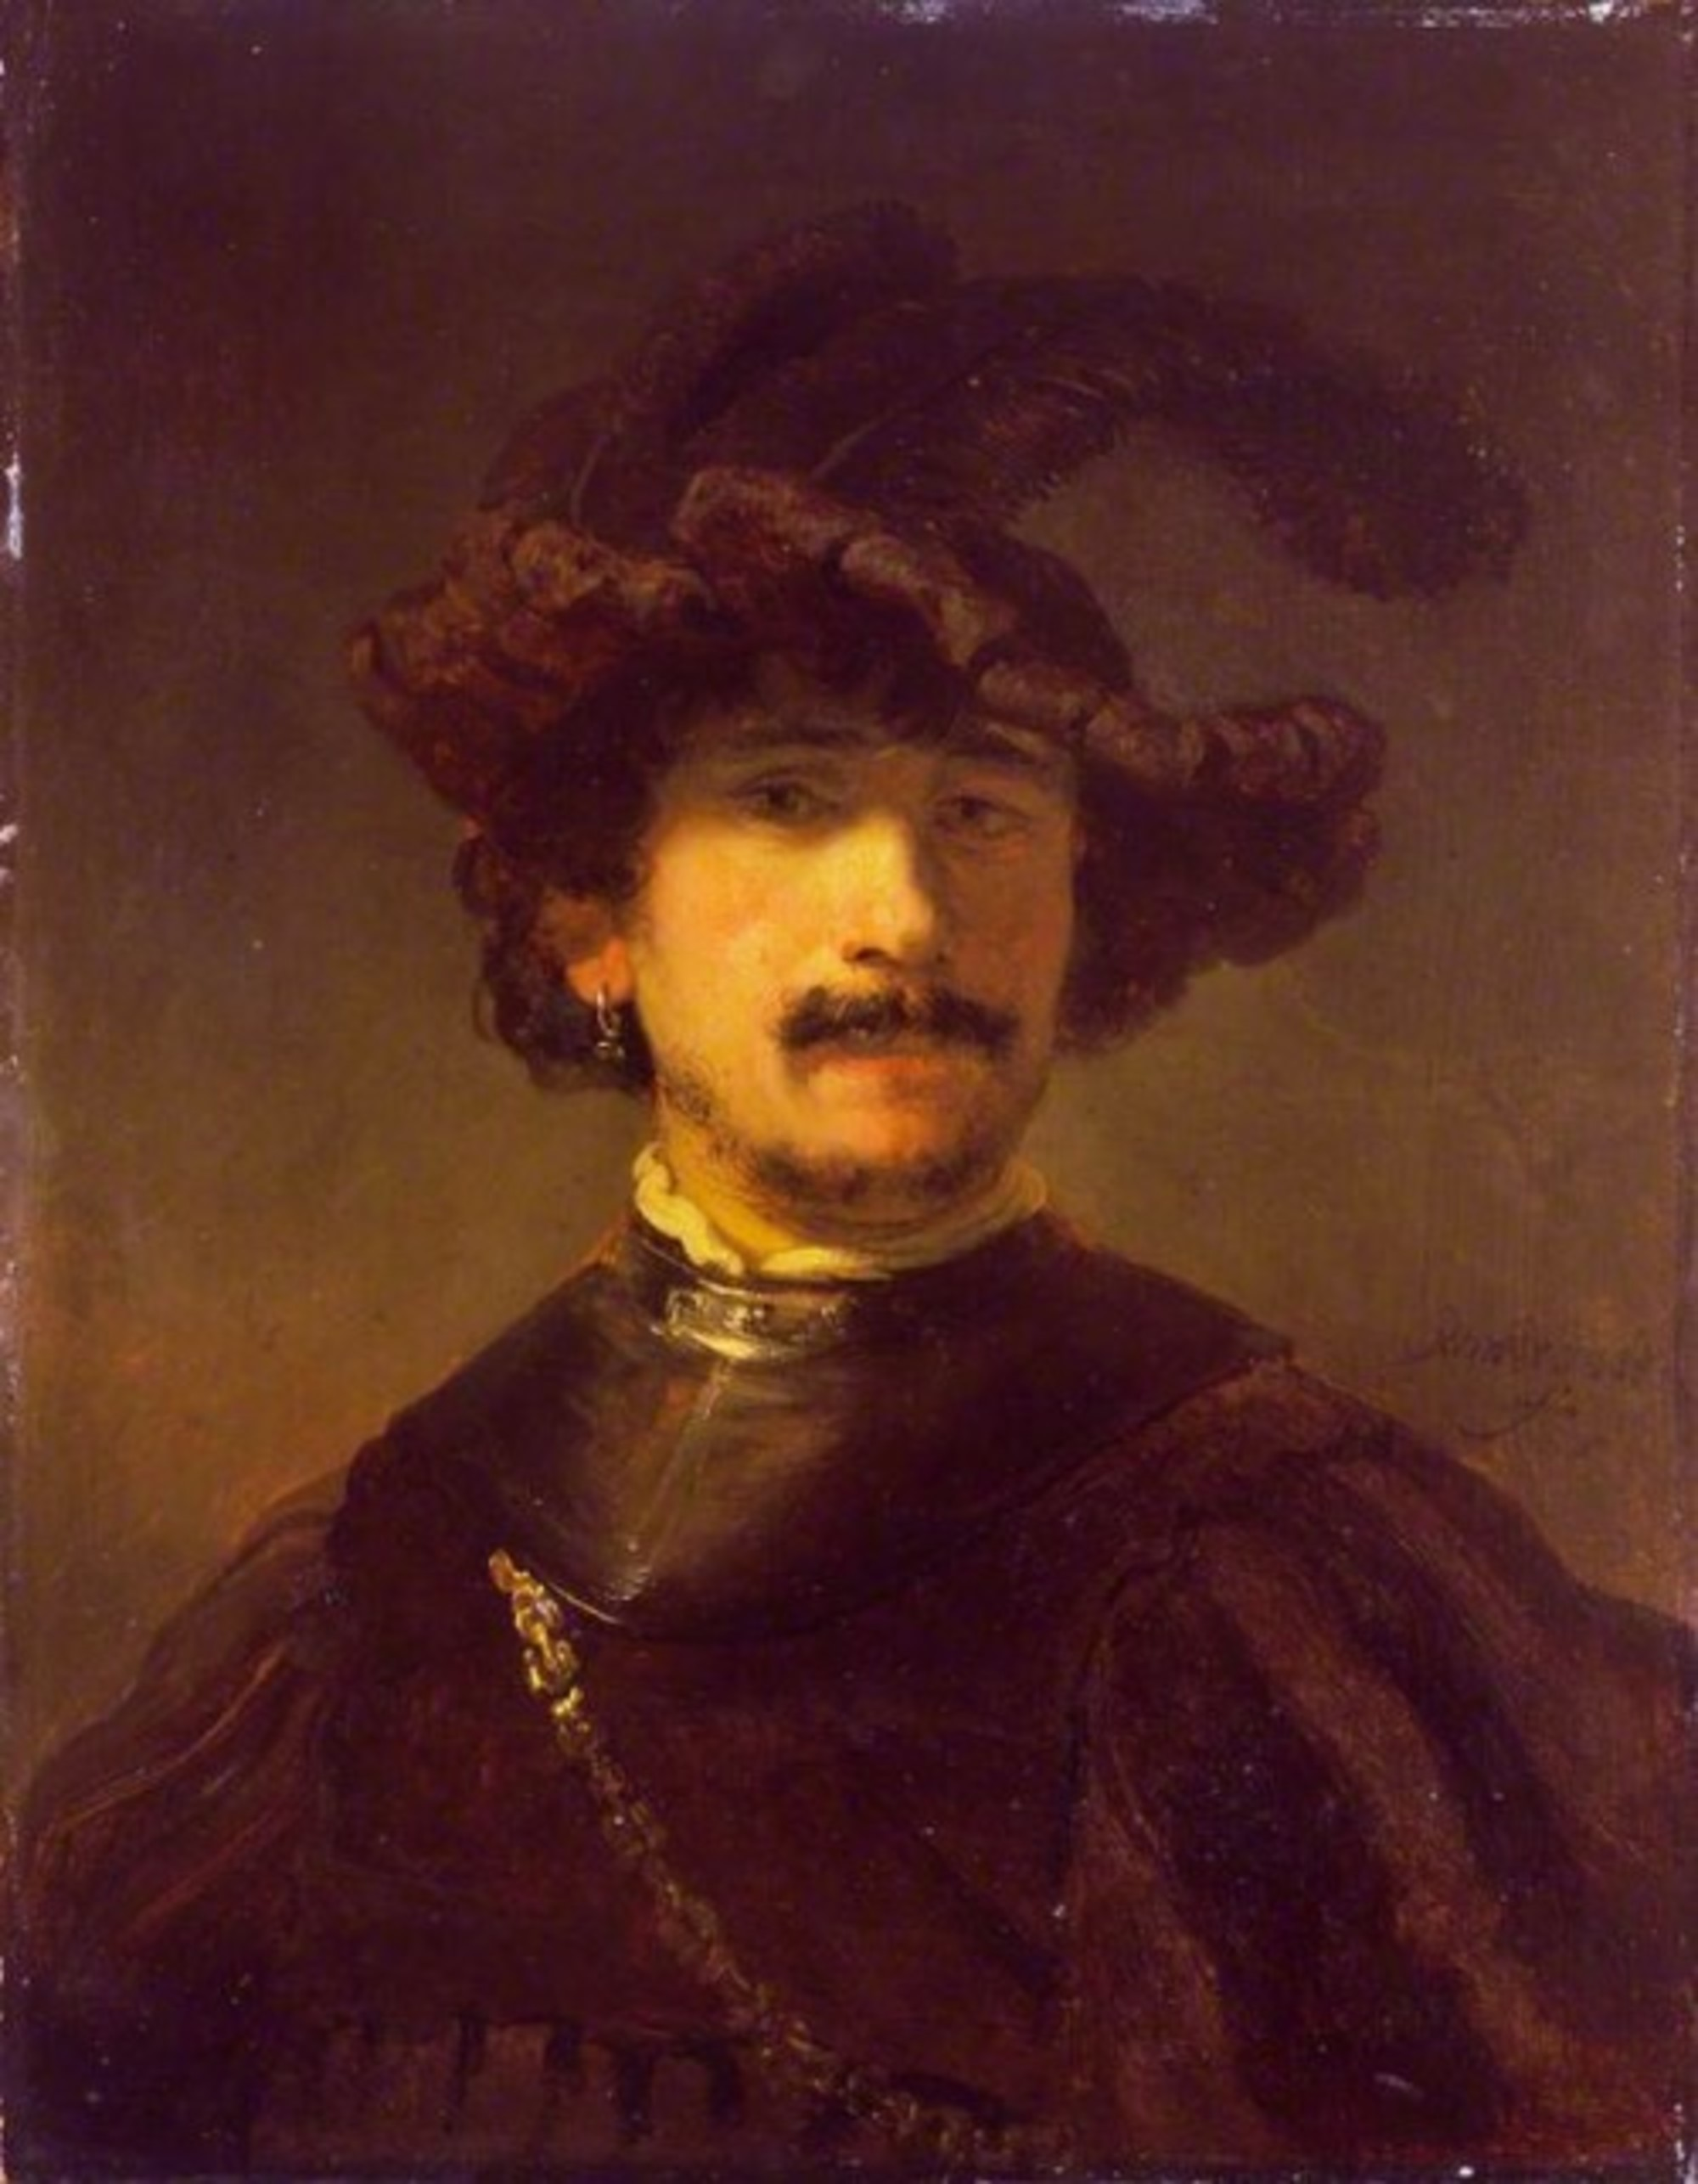 Rembrandt---Bust-of-a-Man-in-a-Gorget-and-Plumed-Bonnet.jpg